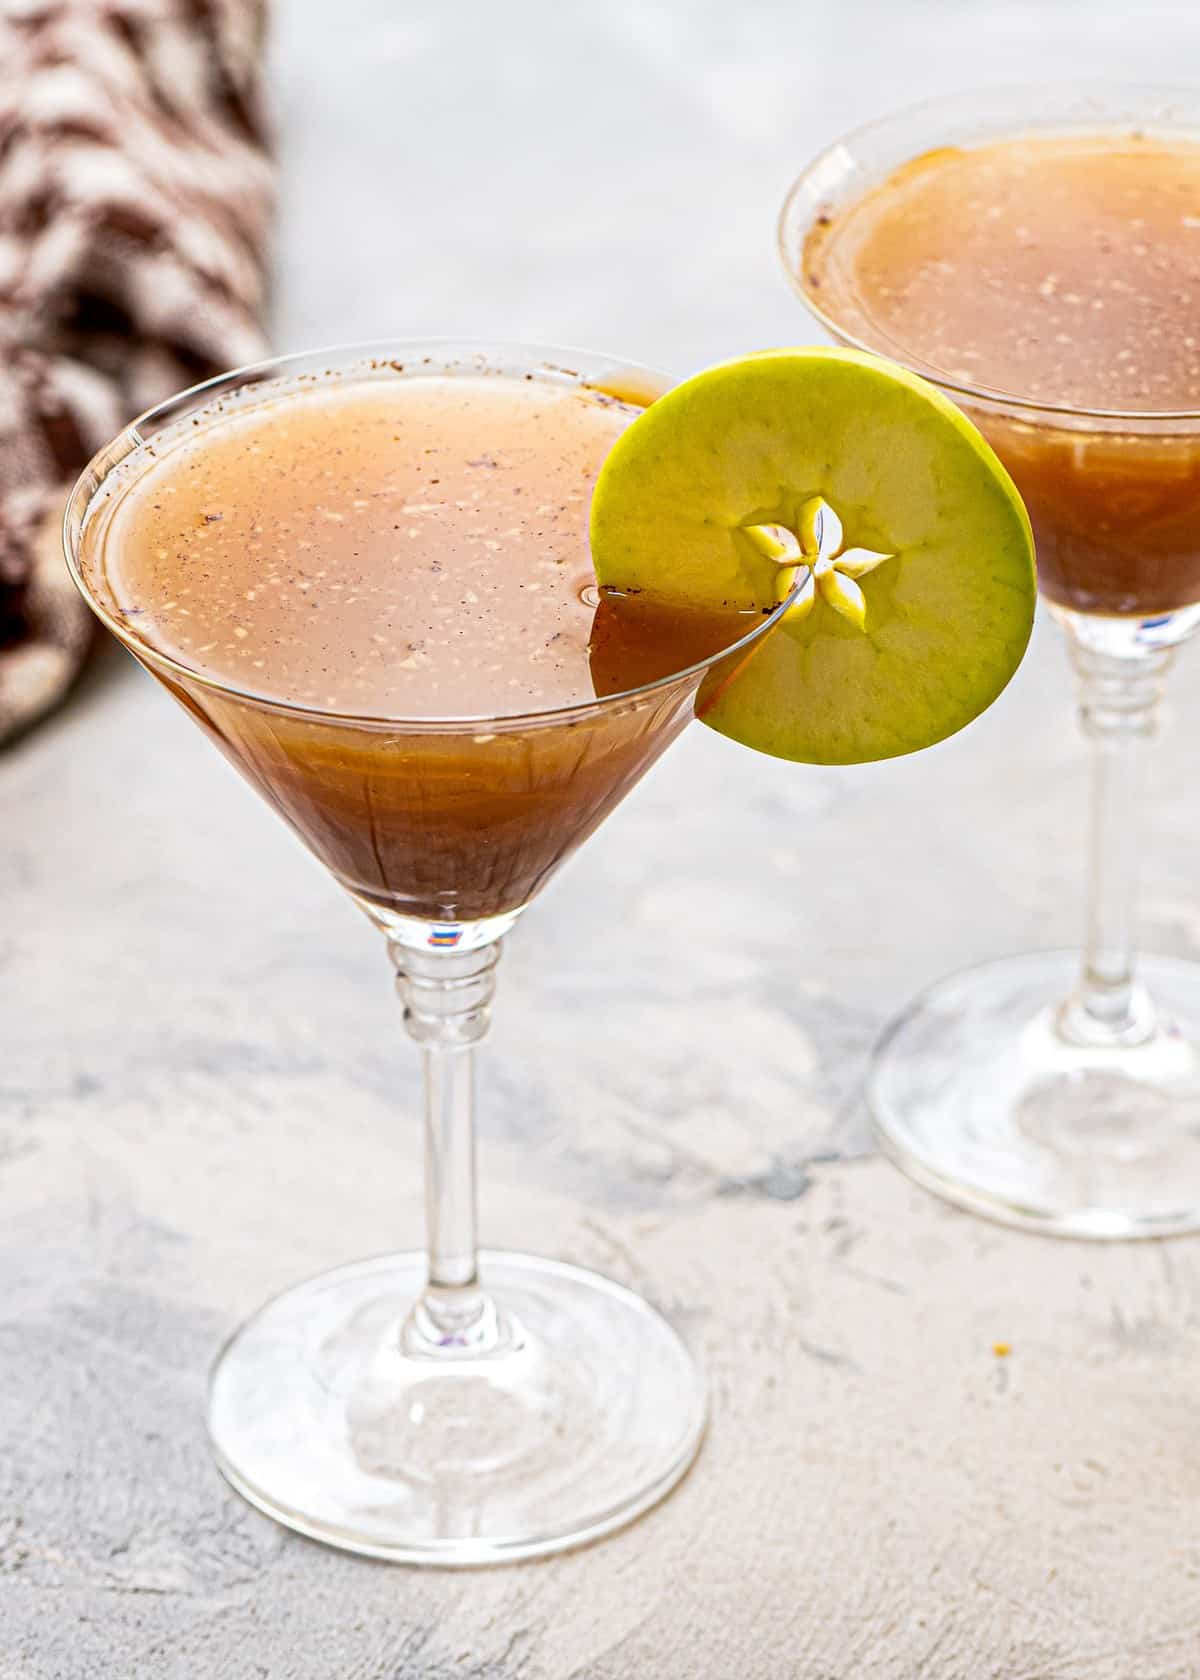 Homemade Caramel Apple Martini